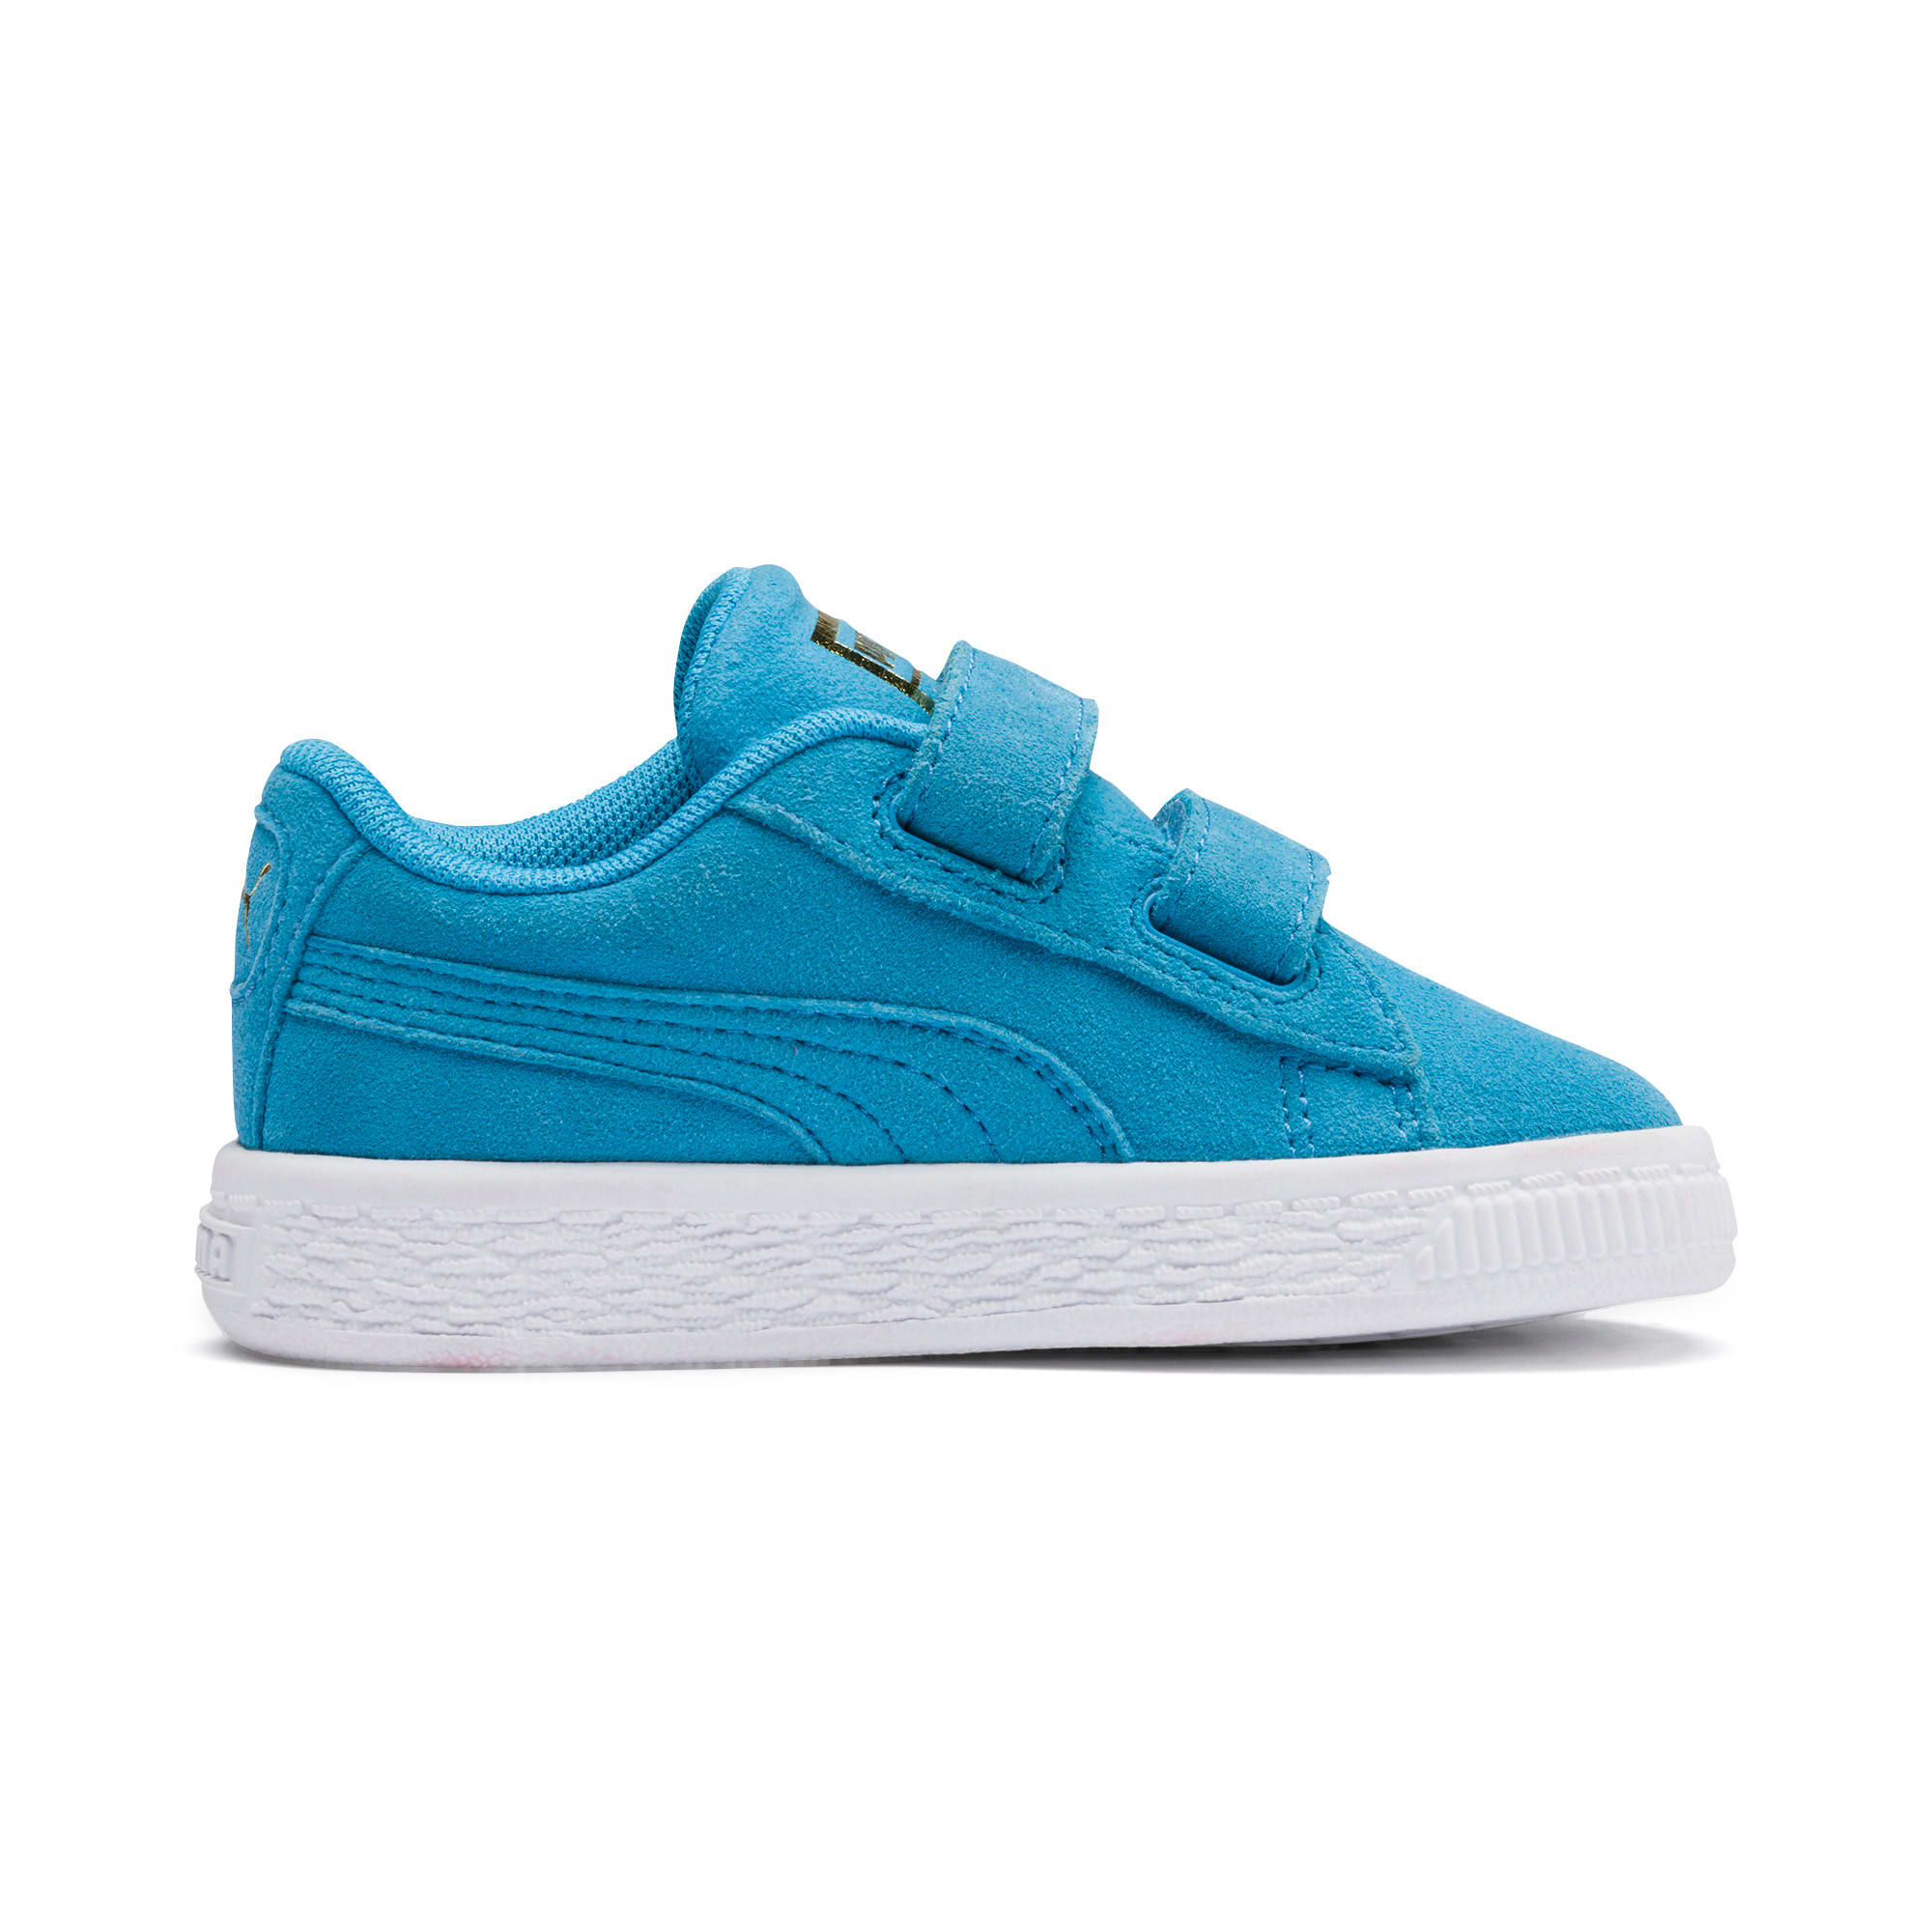 Thumbnail 5 of Sesame Street 50 Suede Statement Babies' Trainers, Bleu Azur-Puma White, medium